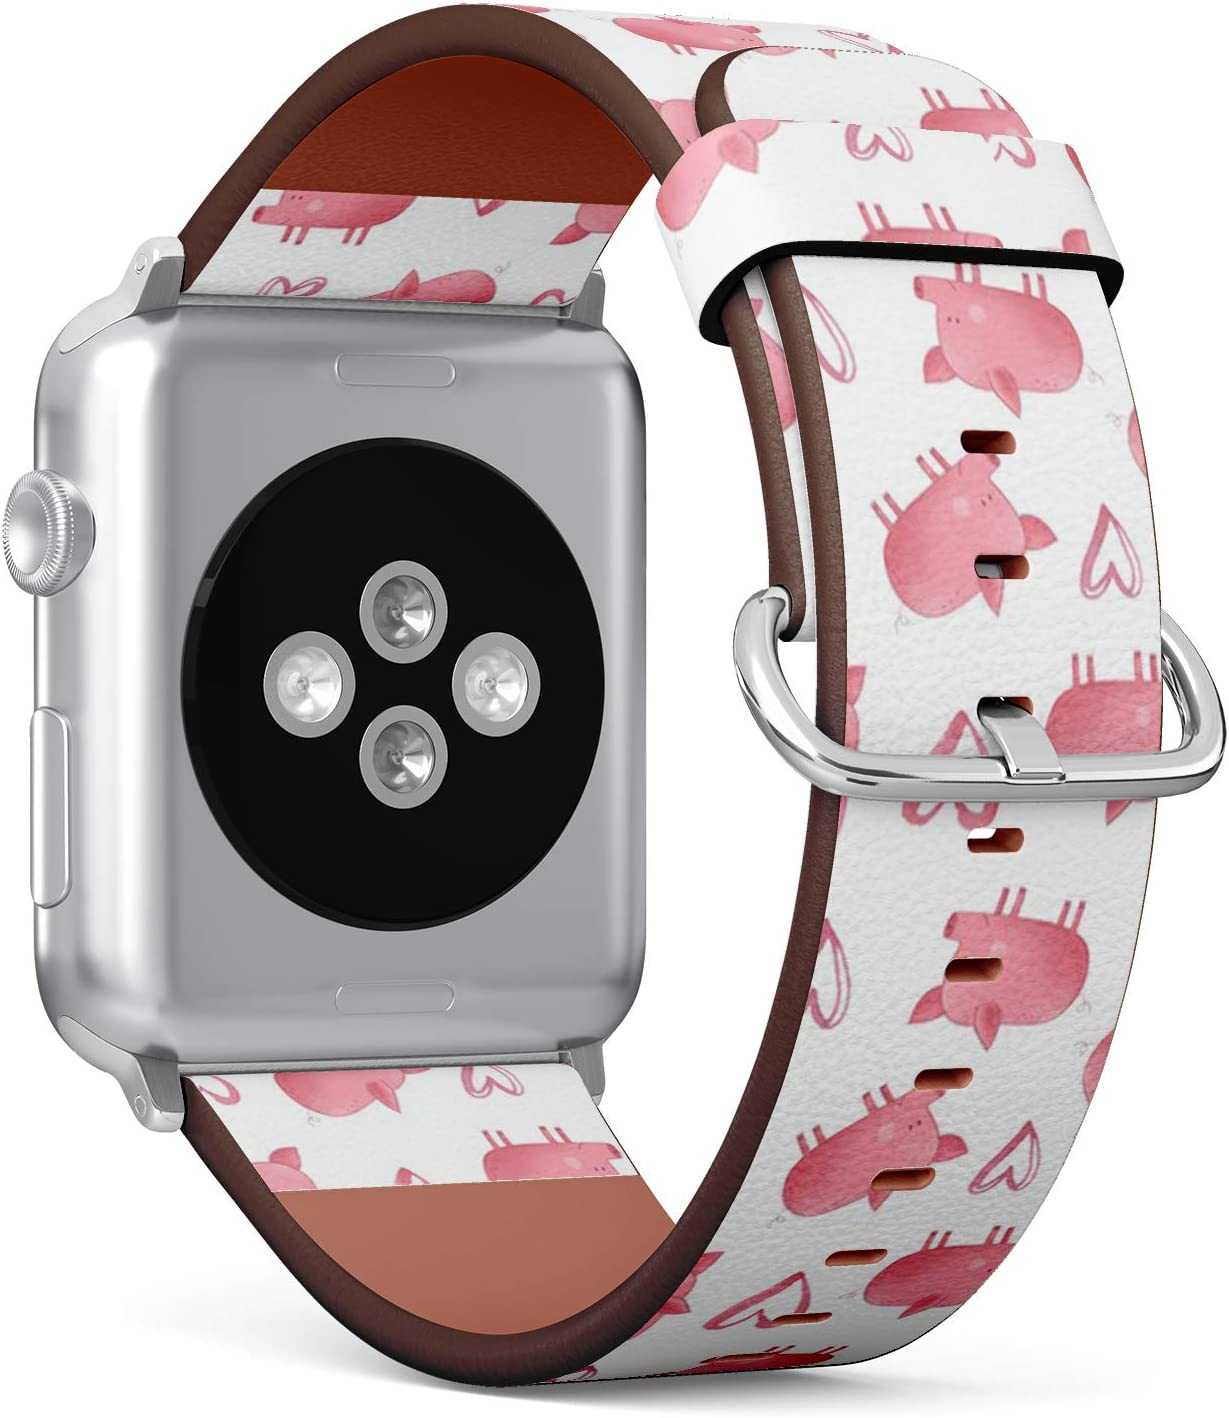 Compatible with Big Apple Watch 42mm & 44mm (All Series) Leather Watch Wrist Band Strap Bracelet with Stainless Steel Clasp and Adapters (Cute Pig)